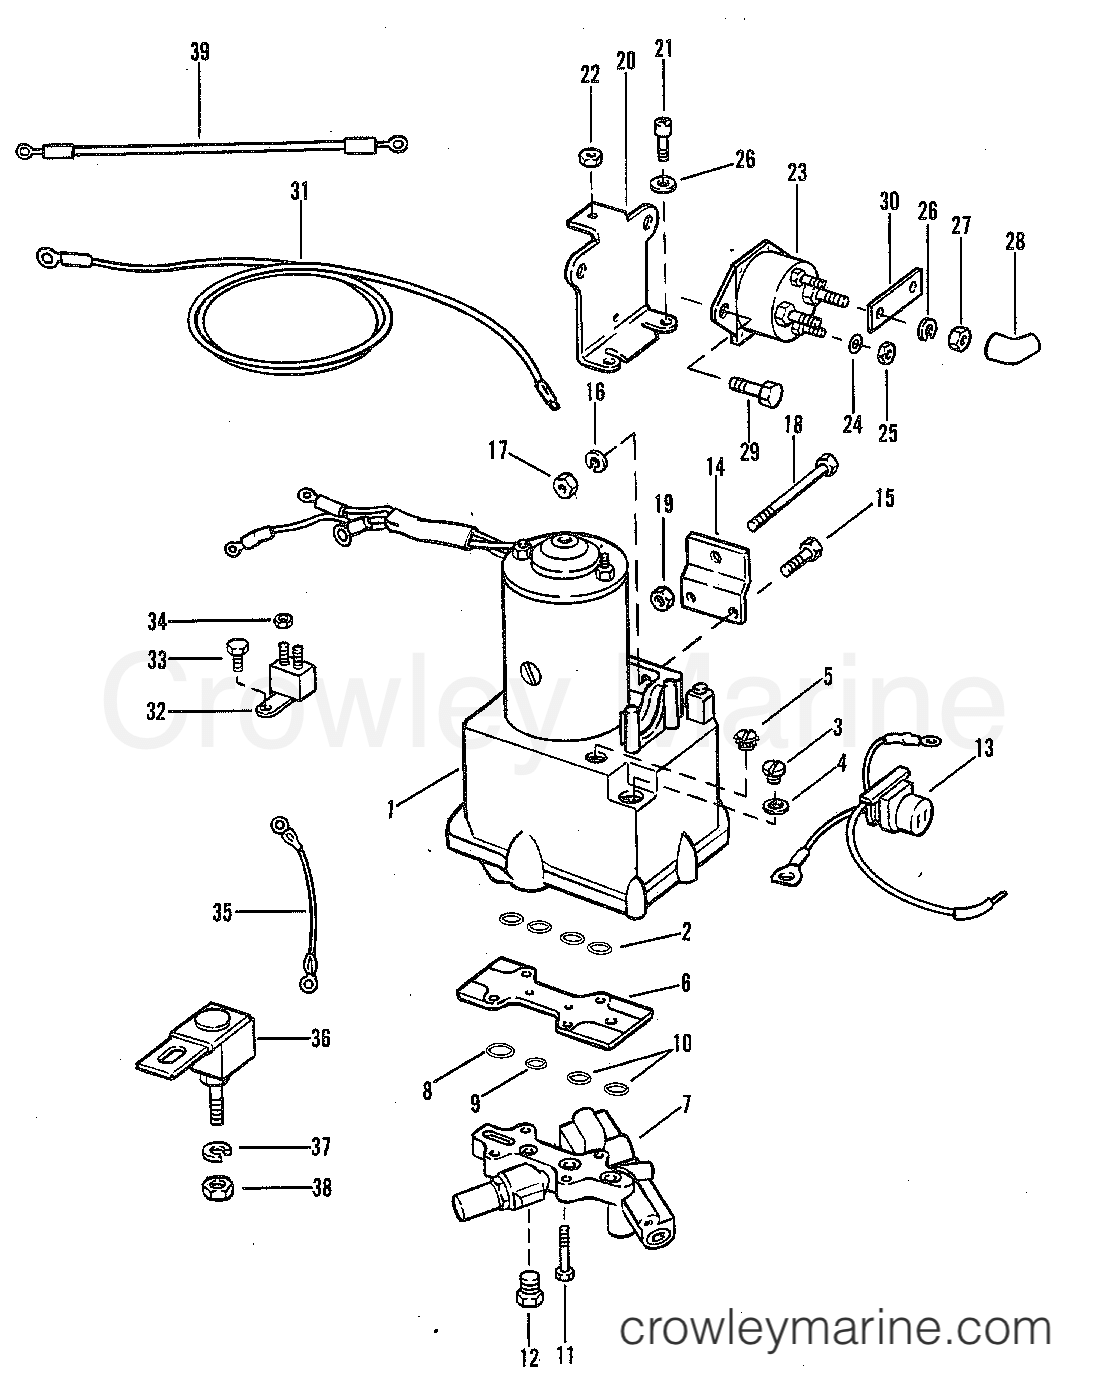 POWER TRIM COMPONENTS (WITH CIRCUIT BREAKER AND FUSE